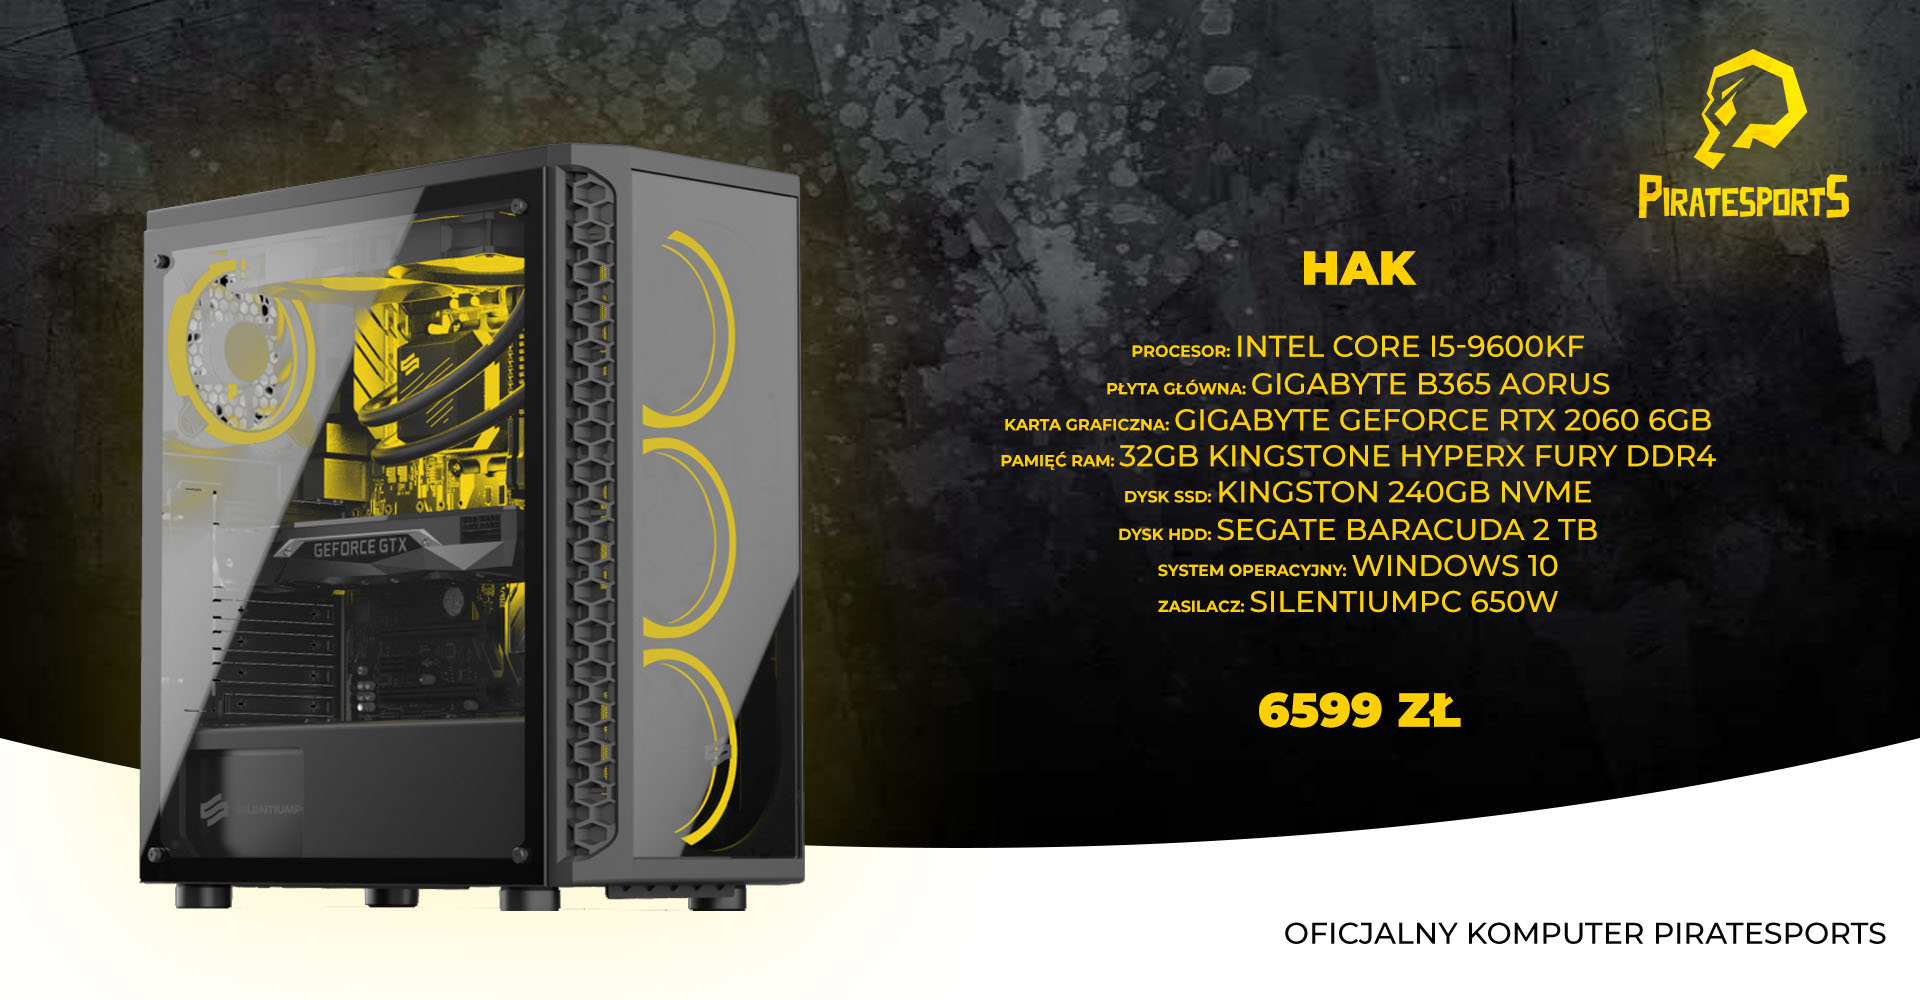 Piratesports HAK Intel Core i5-9600KF 3.7GHz 32GB RAM 240GB SSD 2TB HDD RTX2060 6GB